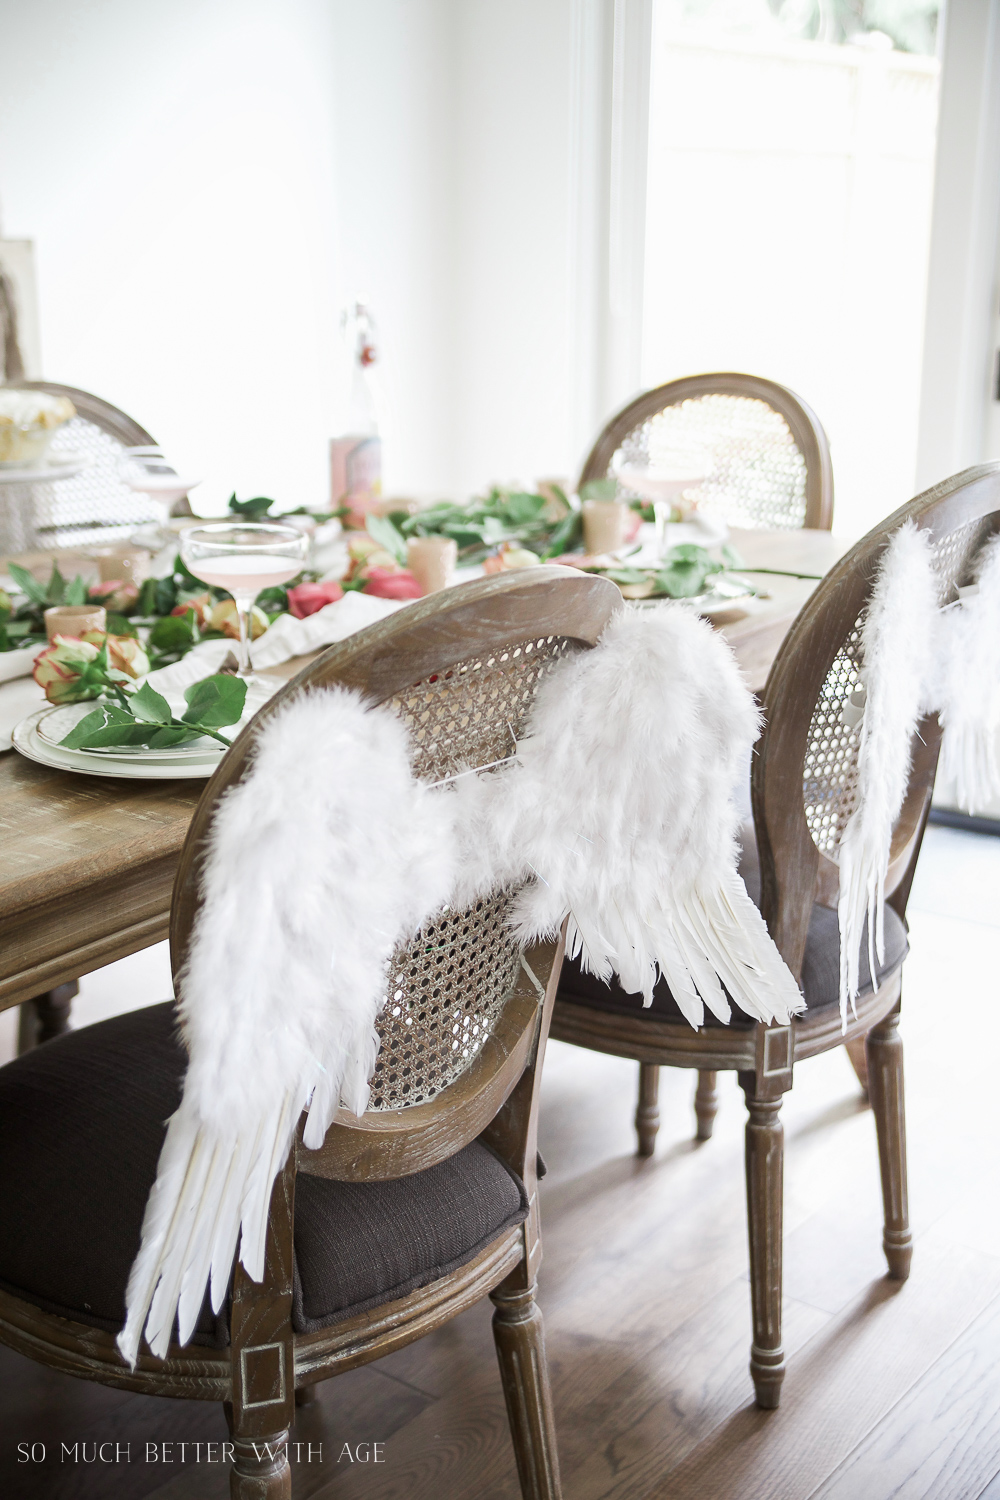 Pretty pink roses Valentine's Day table setting / angel wings on back of chair - So Much Better With Age